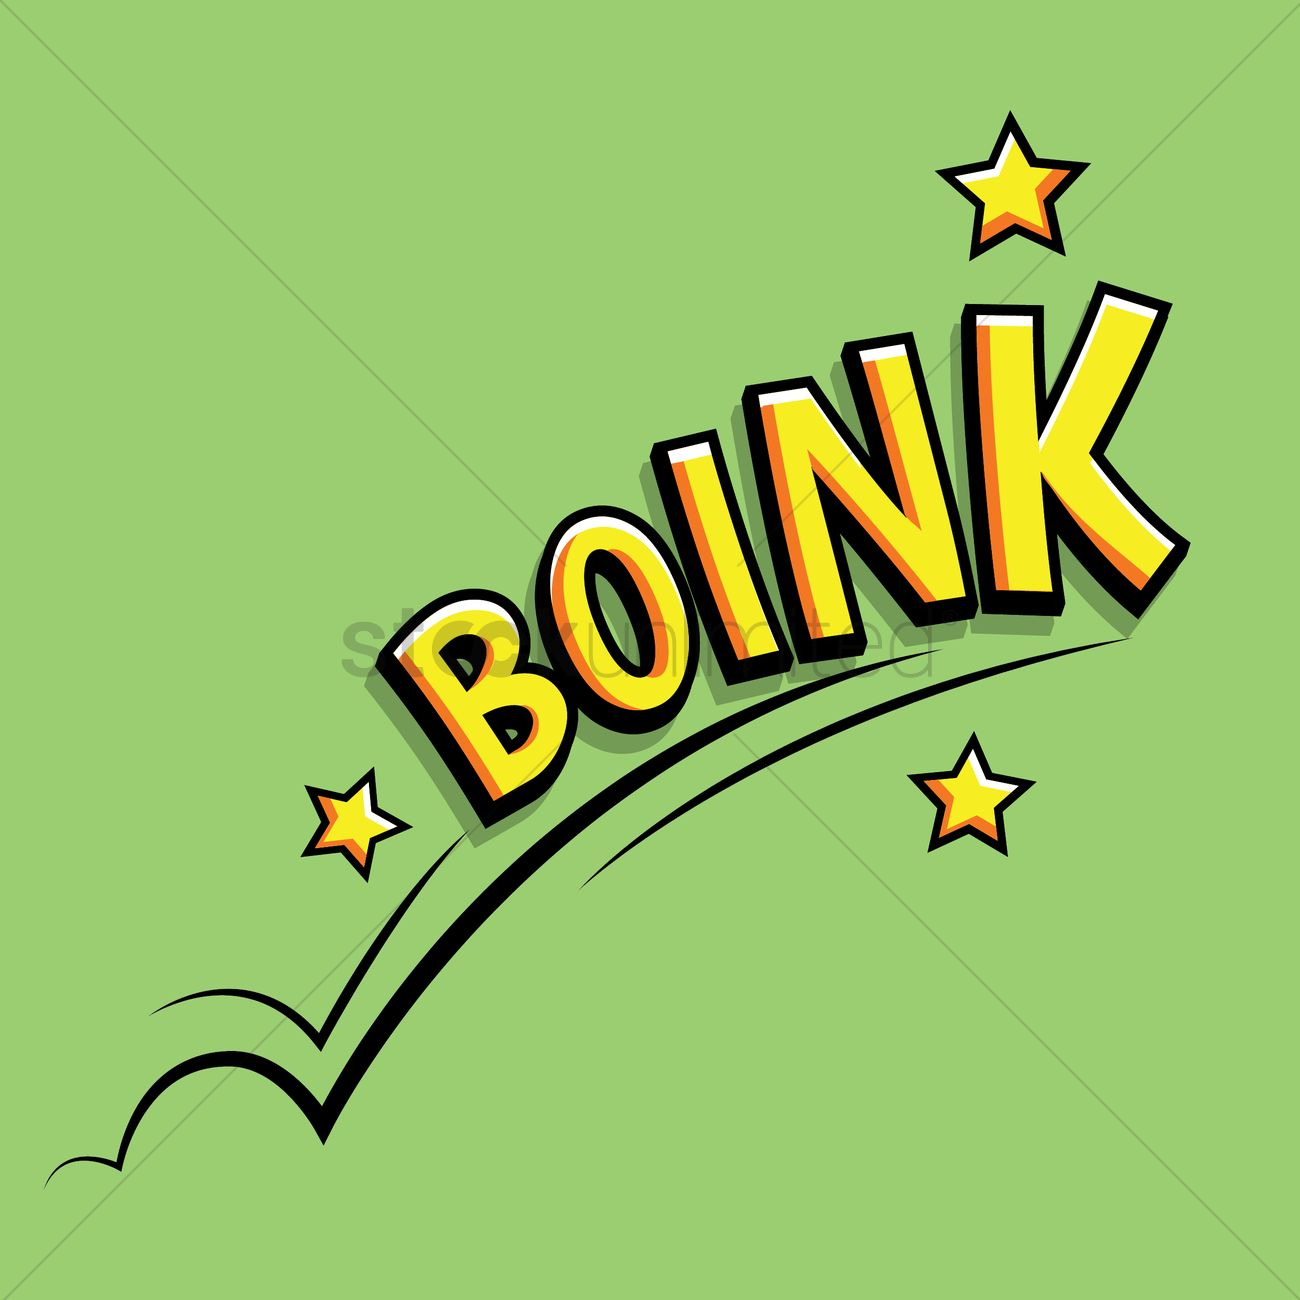 Comic Effect Boink Vector Image 1604041 Stockunlimited